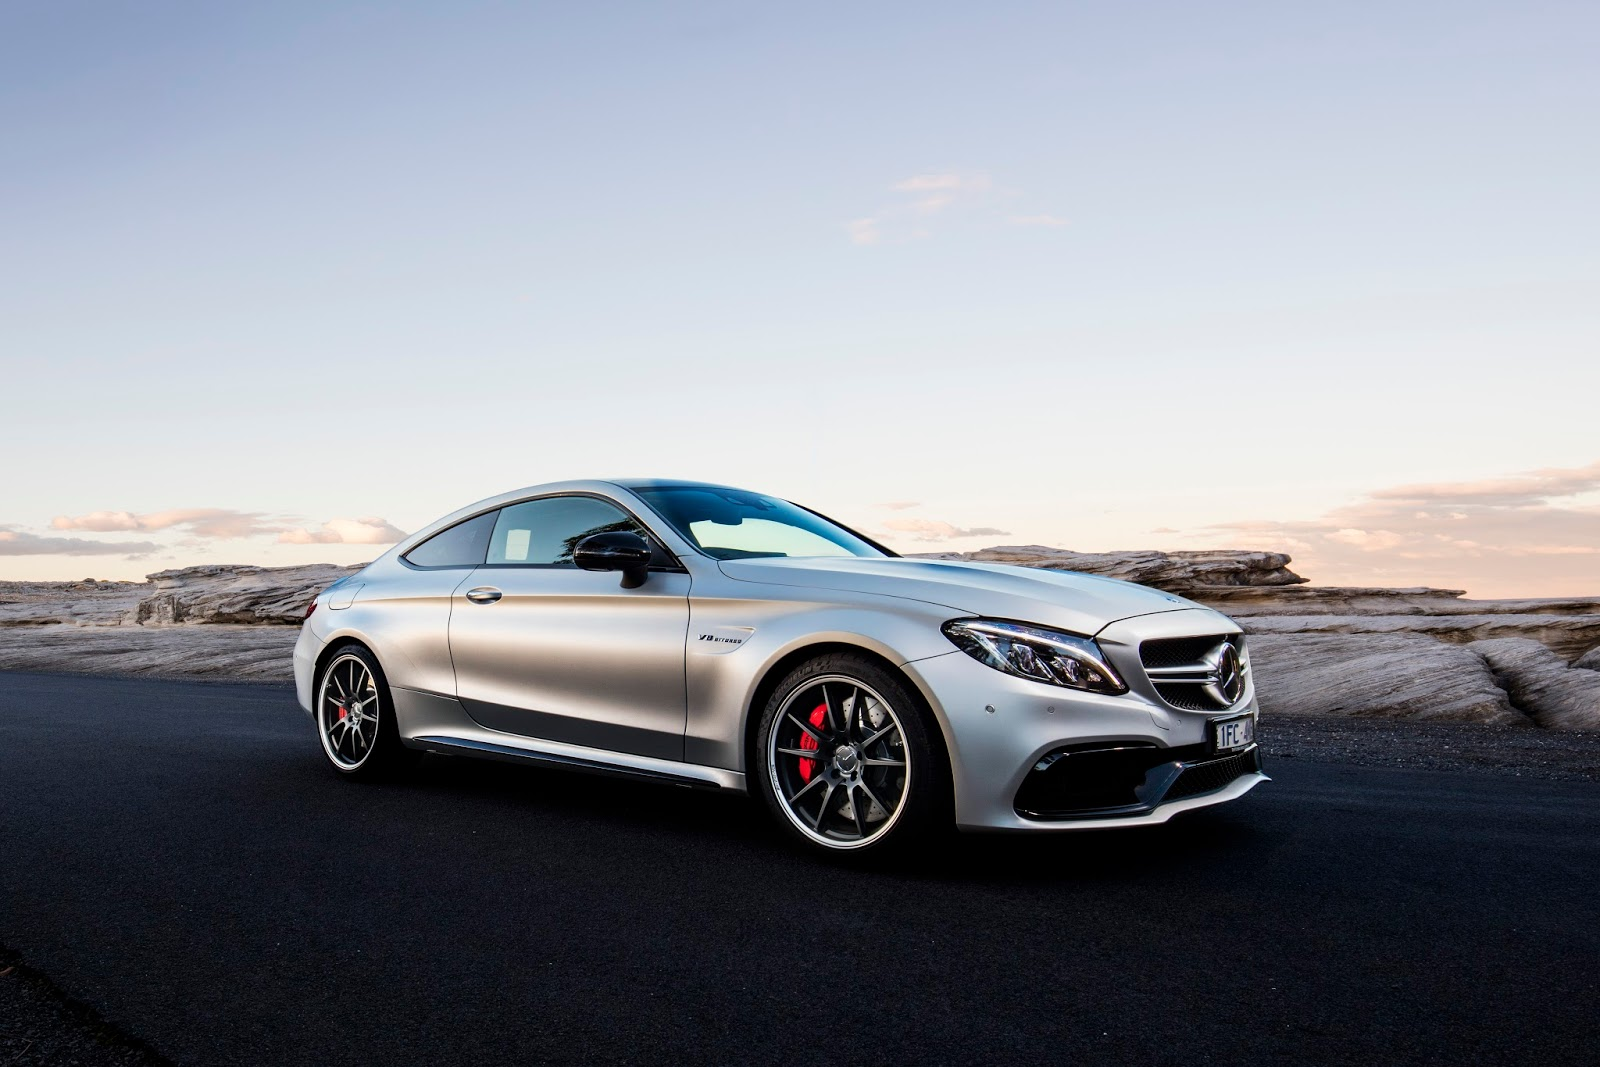 2017 mercedes amg c63 s coupe review autocarvn. Black Bedroom Furniture Sets. Home Design Ideas